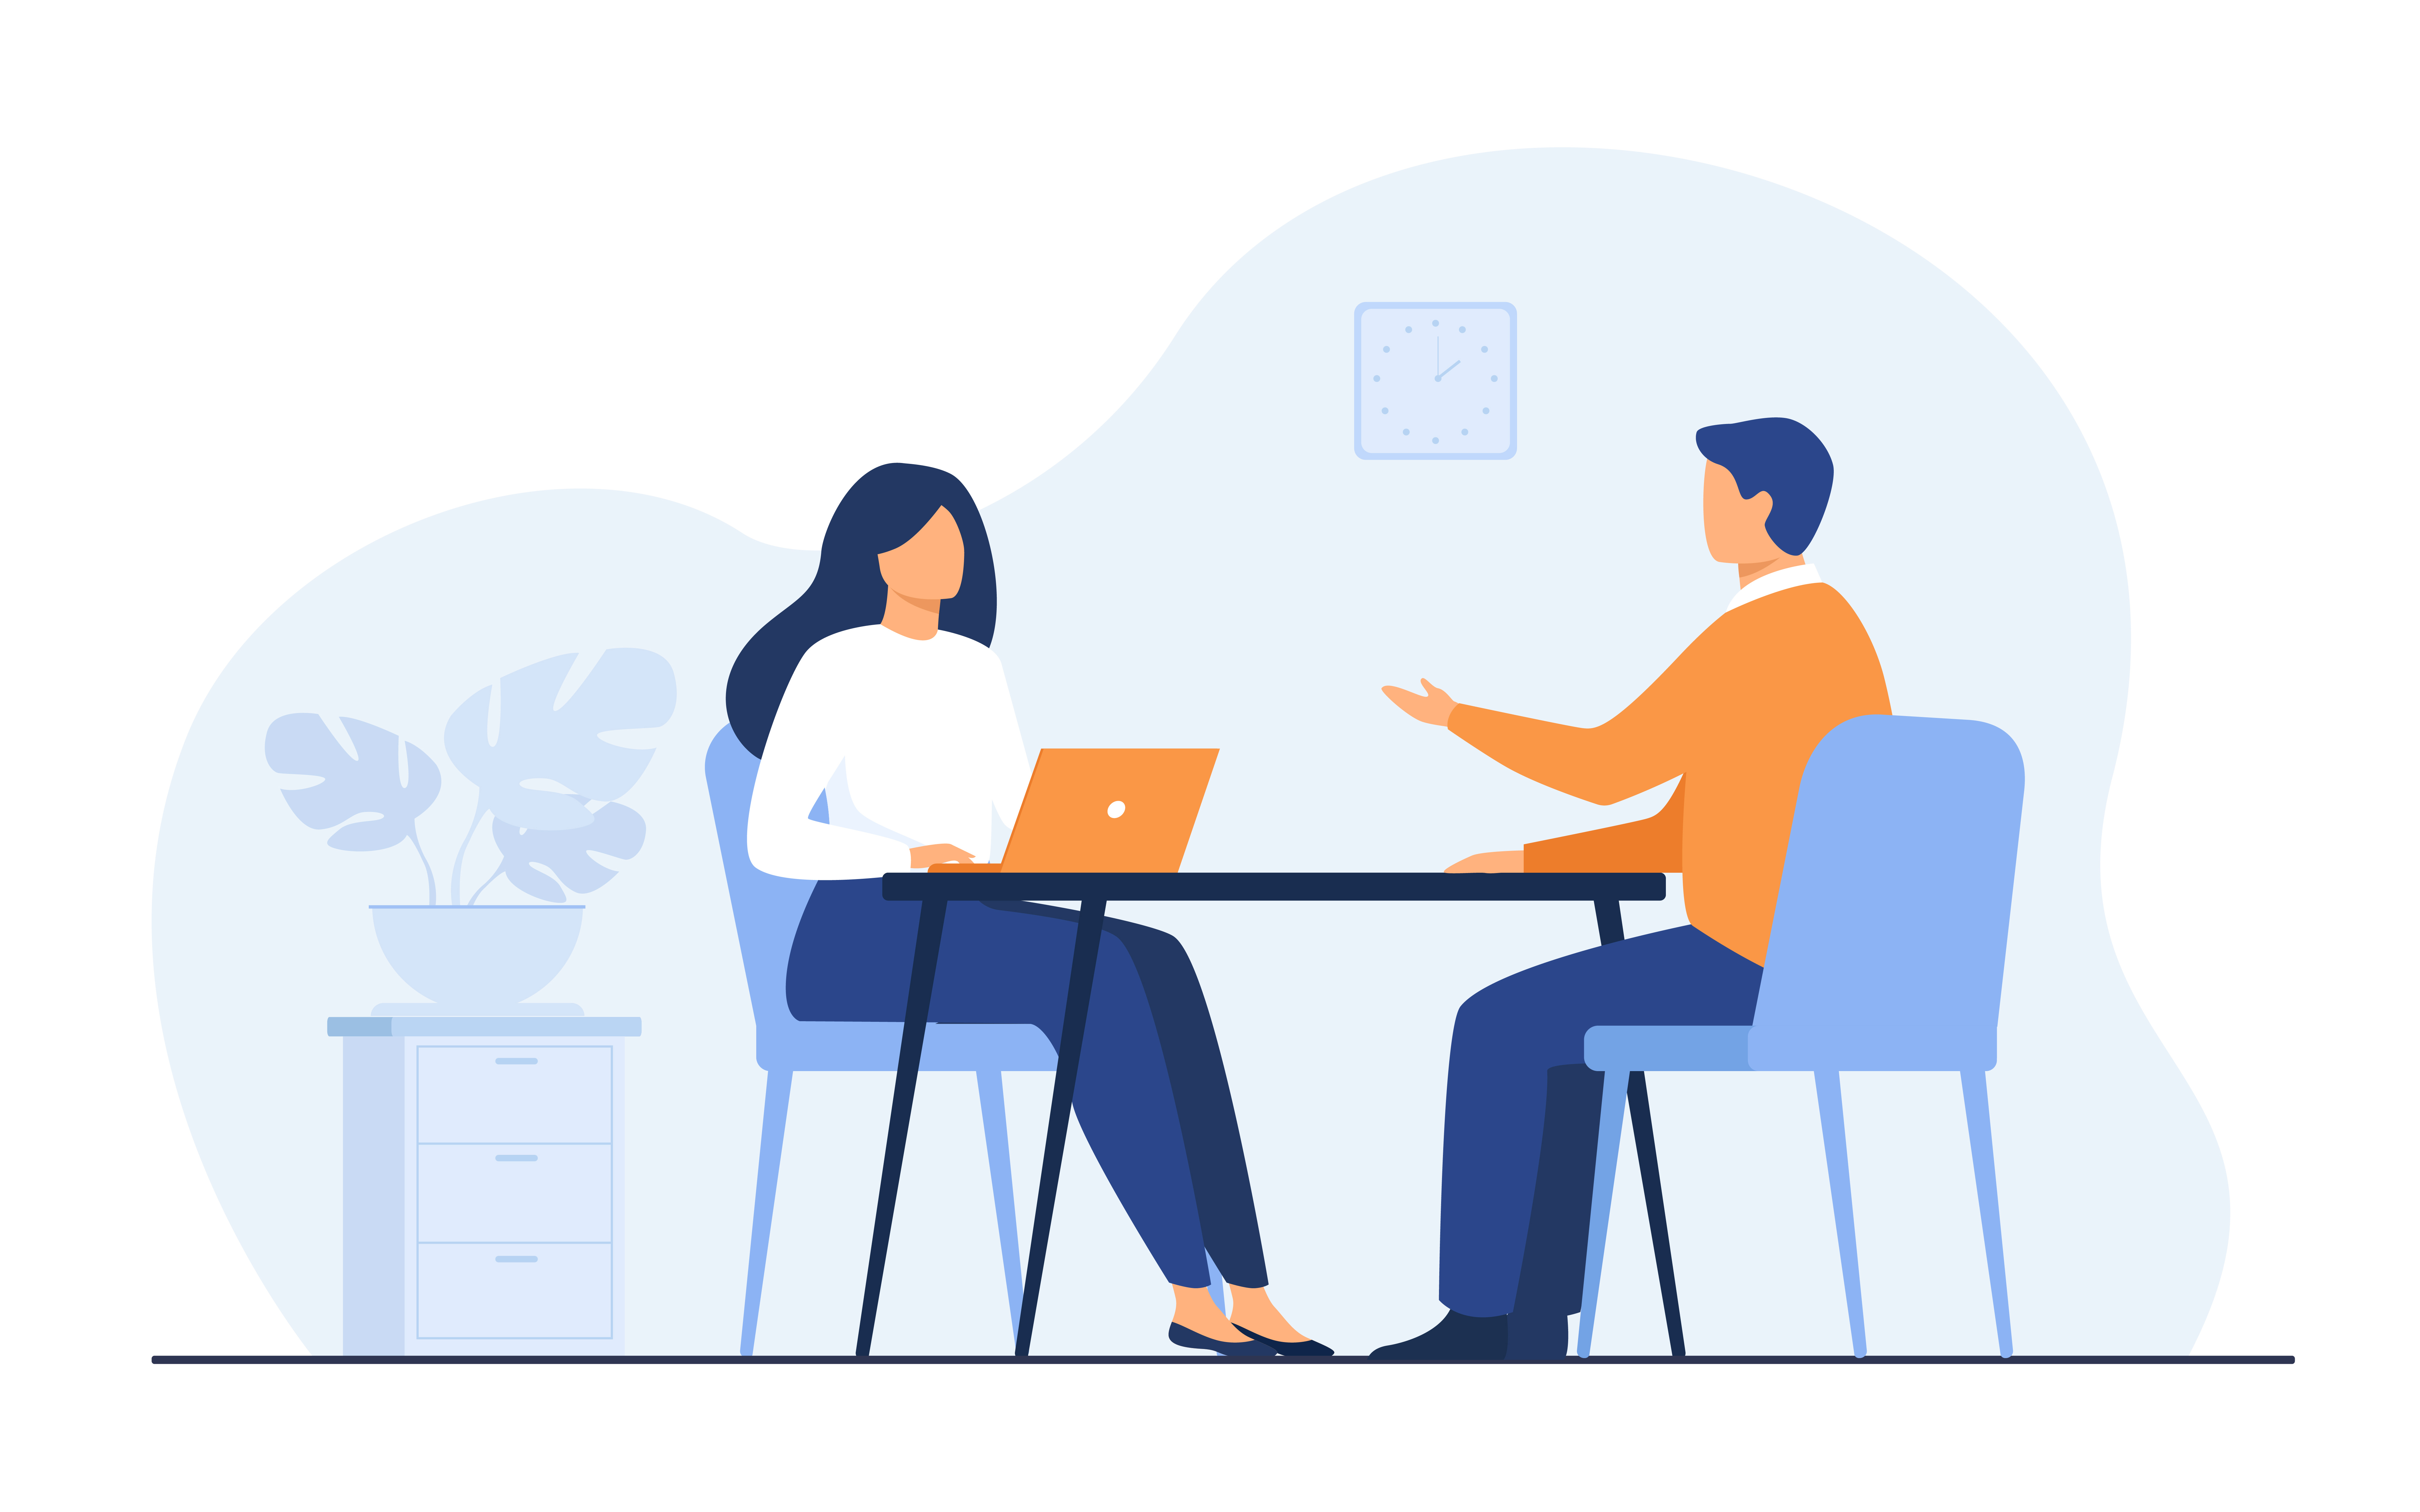 How to Make a Difference with 1-to-1 Meetings